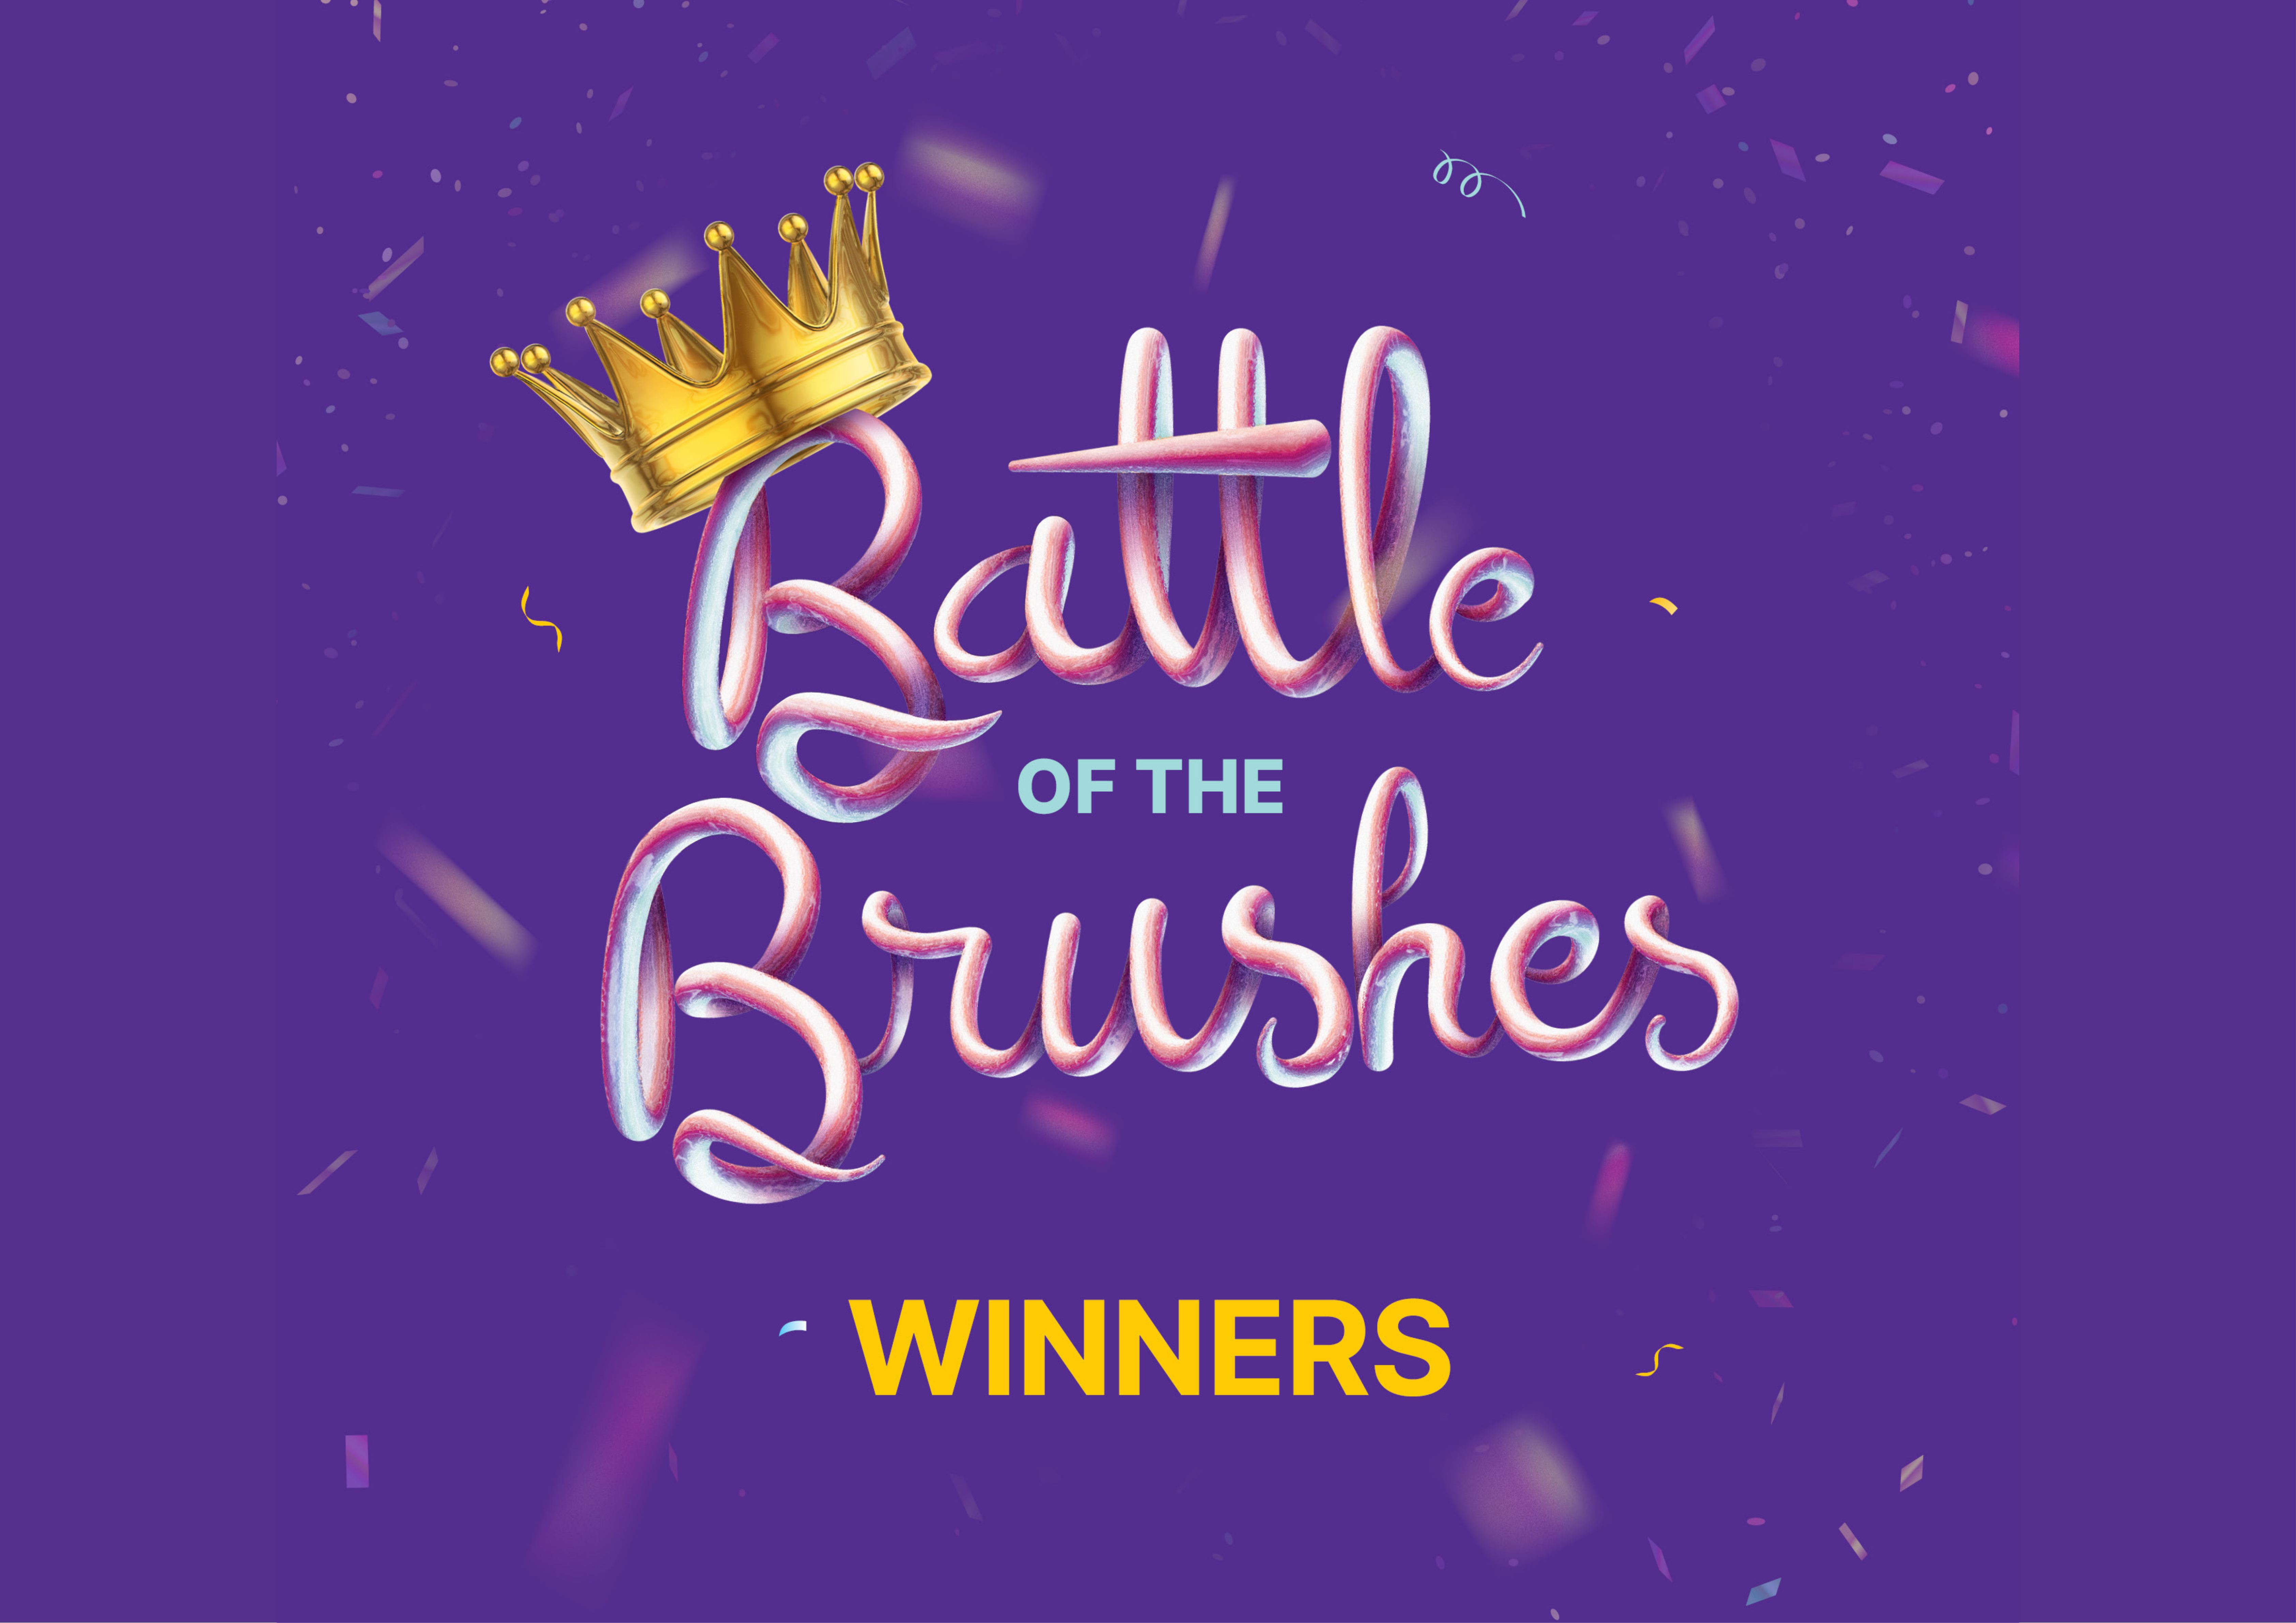 Battle of the Brushes Results thumbnail image.